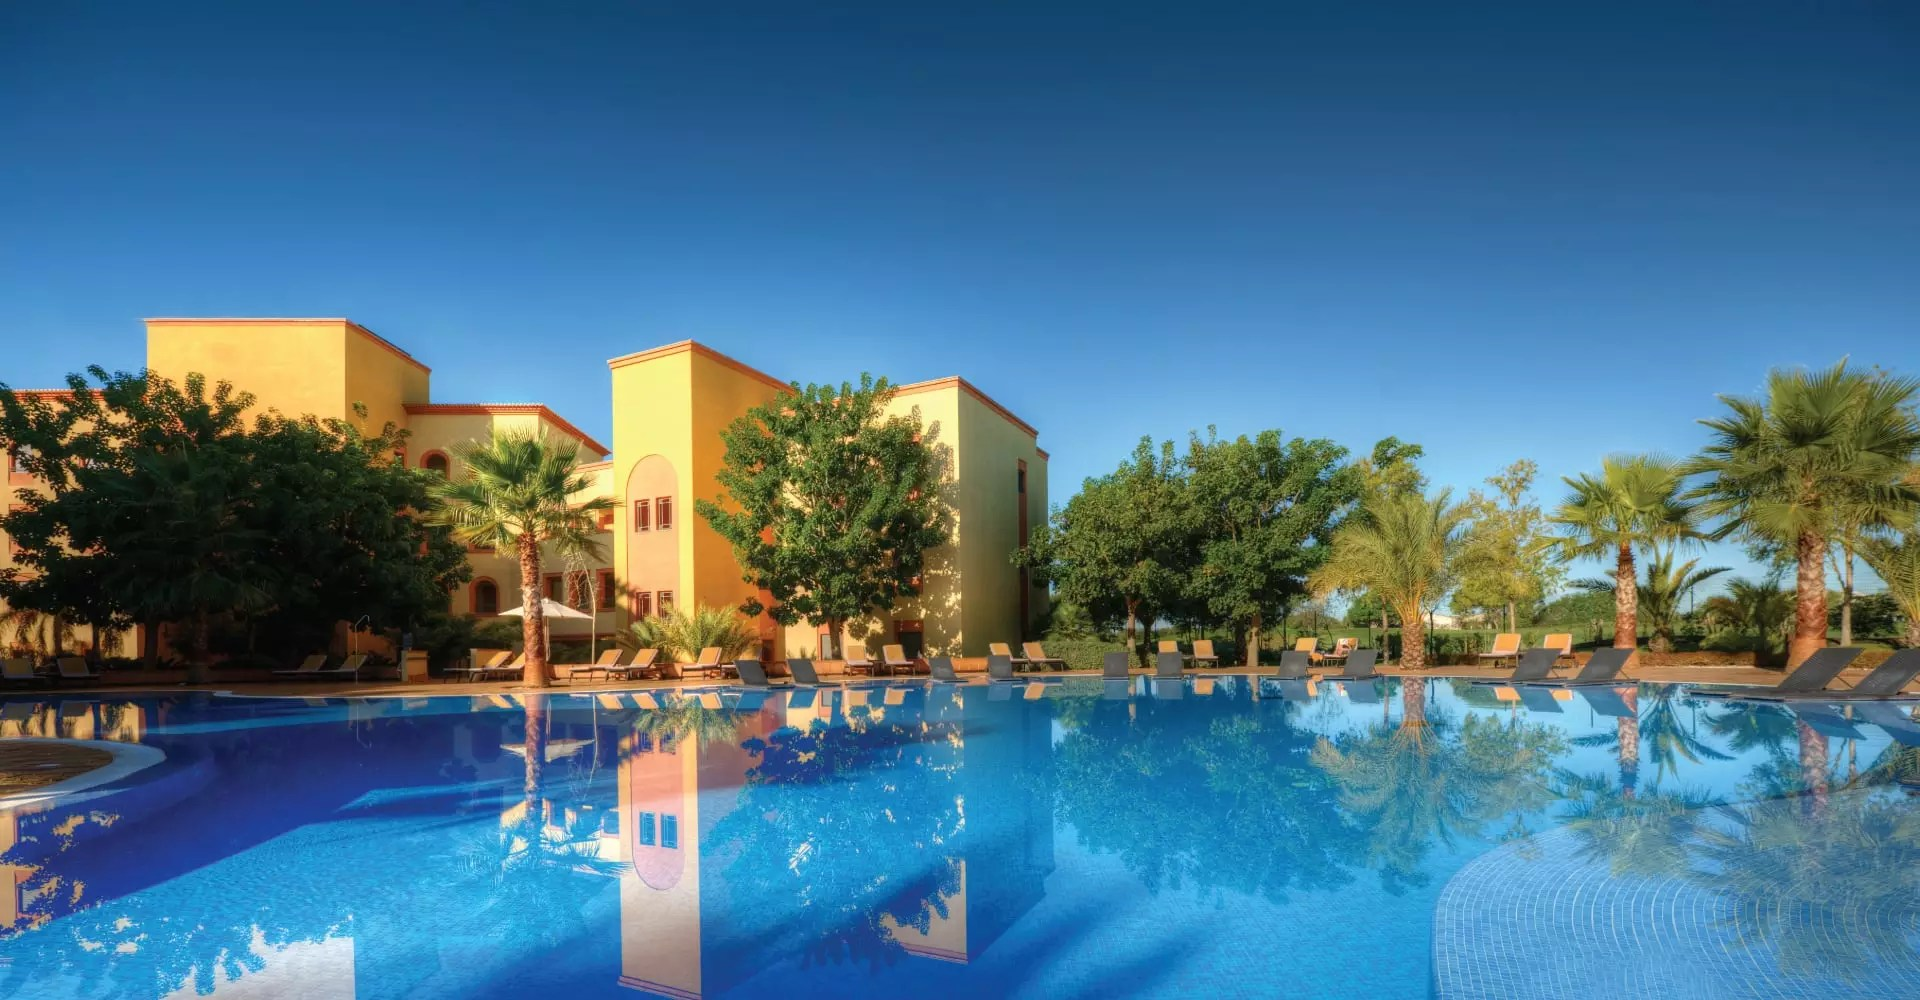 Hotel Tivoli Lagos Parking The Residences At Victoria By Tivoli 5 Star Aparthotel In Vilamoura